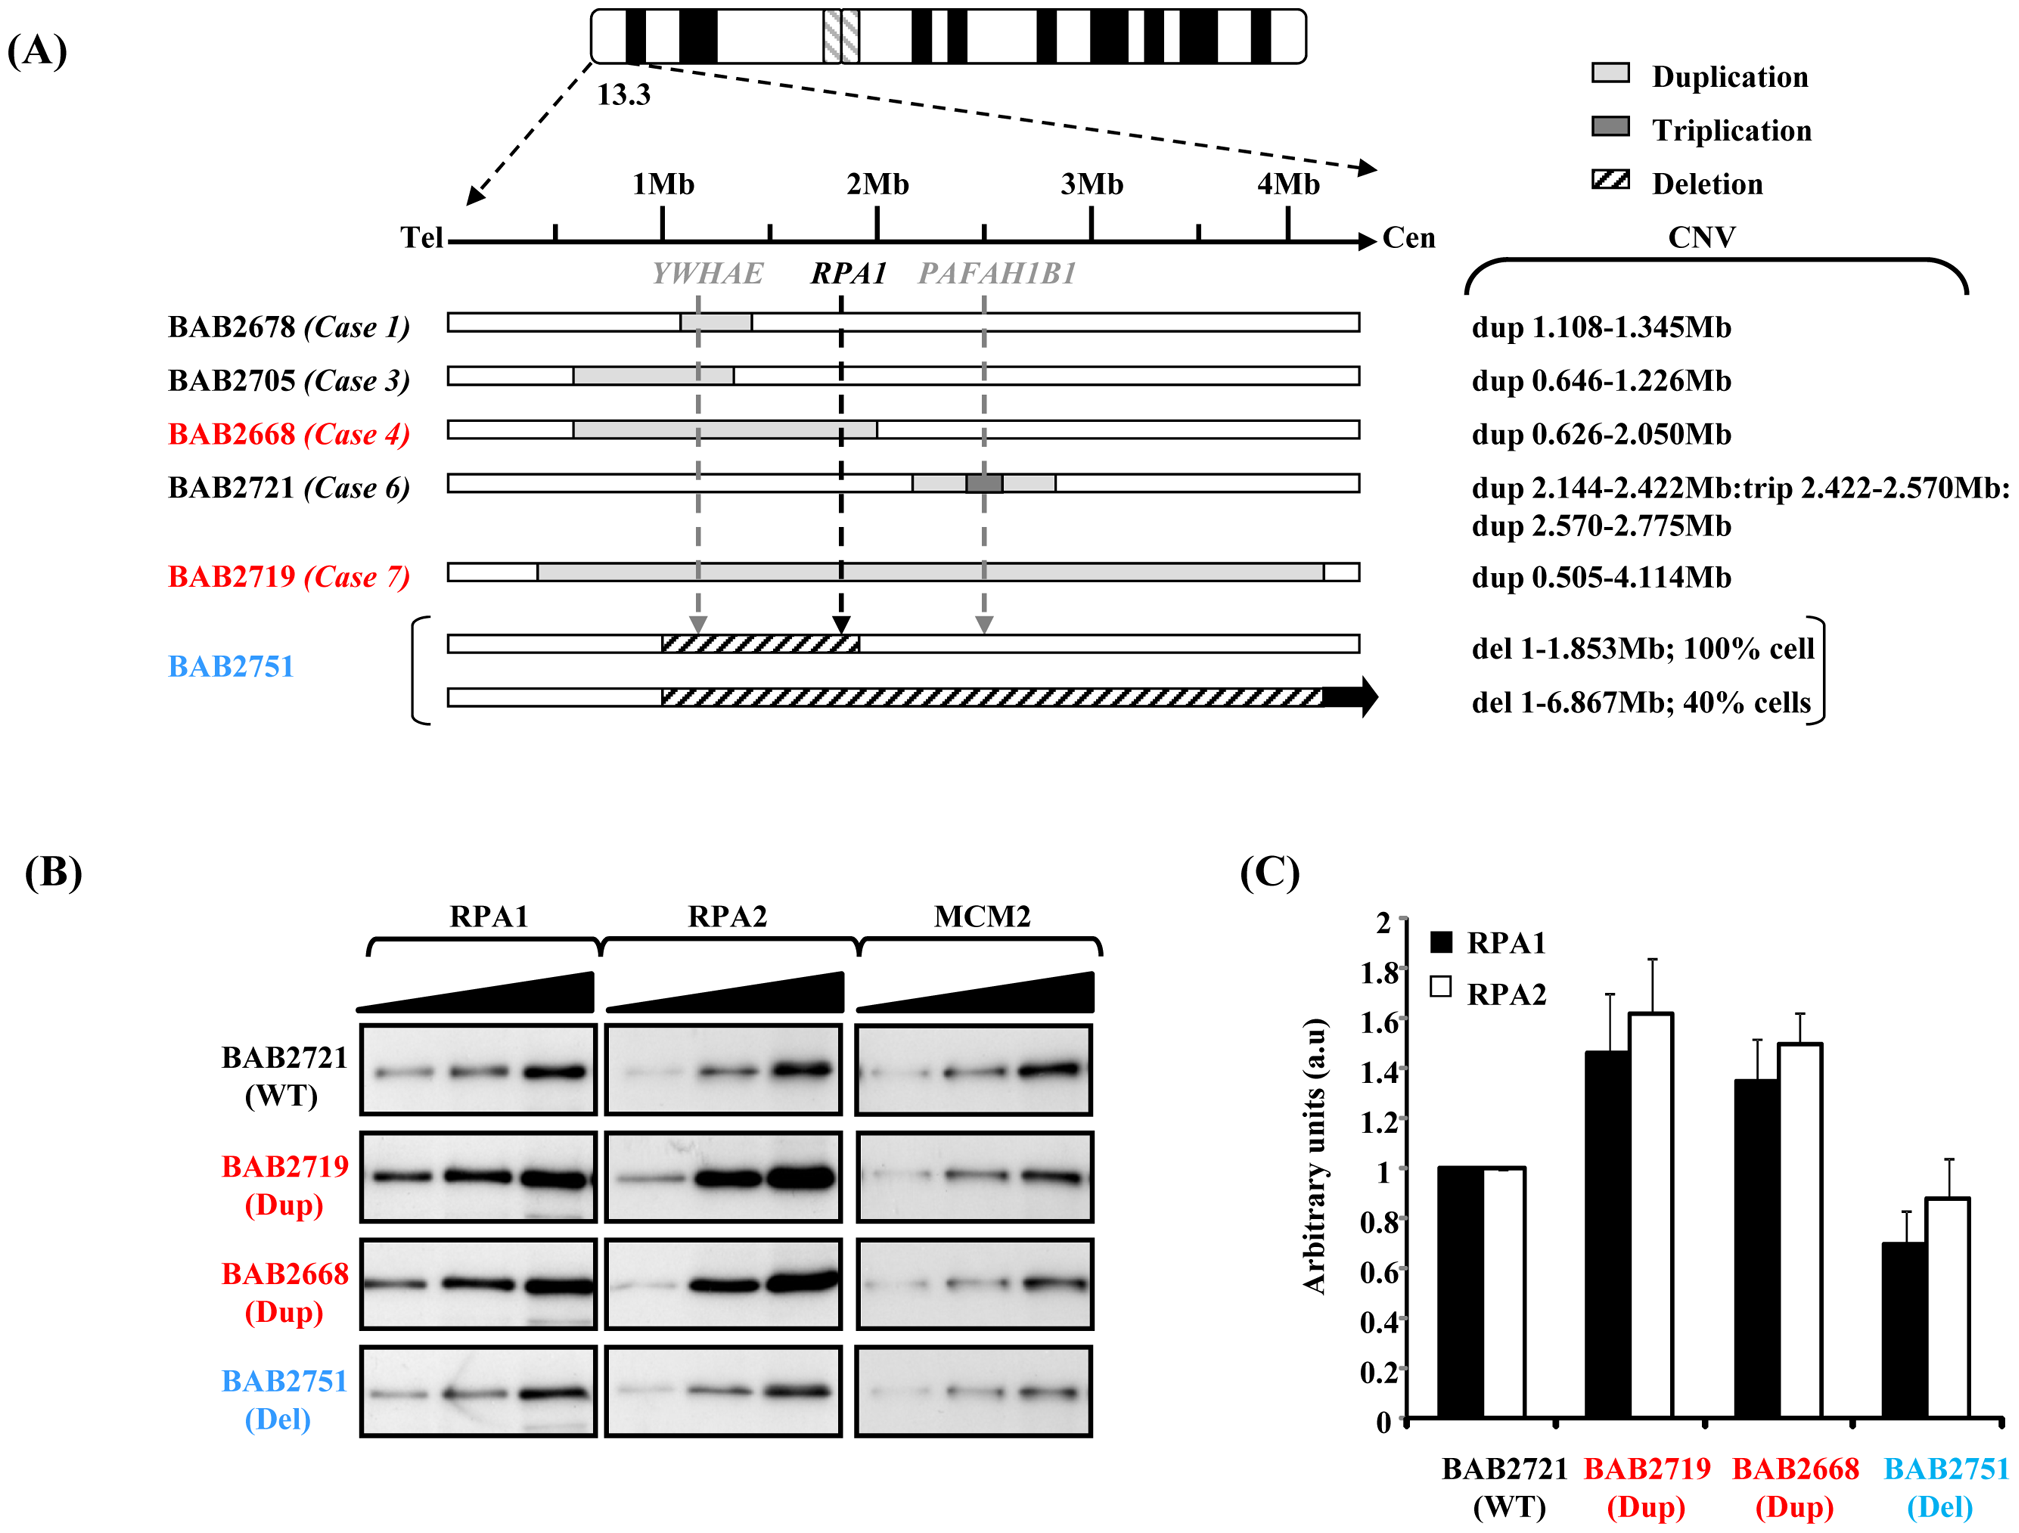 Duplication of <i>RPA1</i> results in RPA1 and RPA2 over-expression.